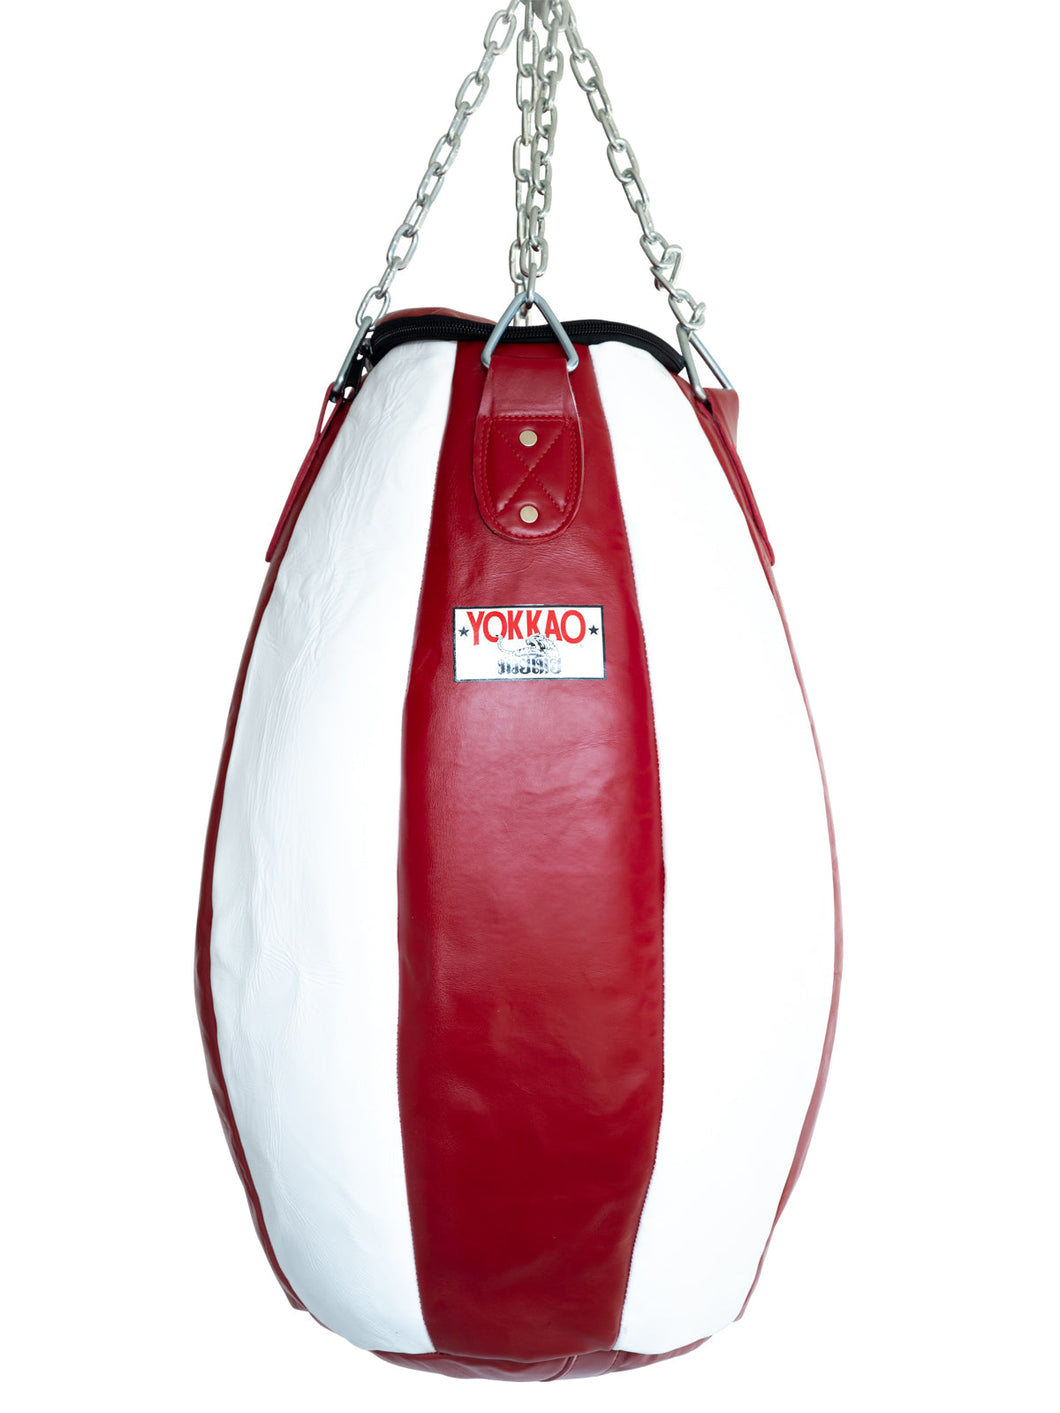 Tear Drop Heavy Bag Biking Red/White - YOKKAO